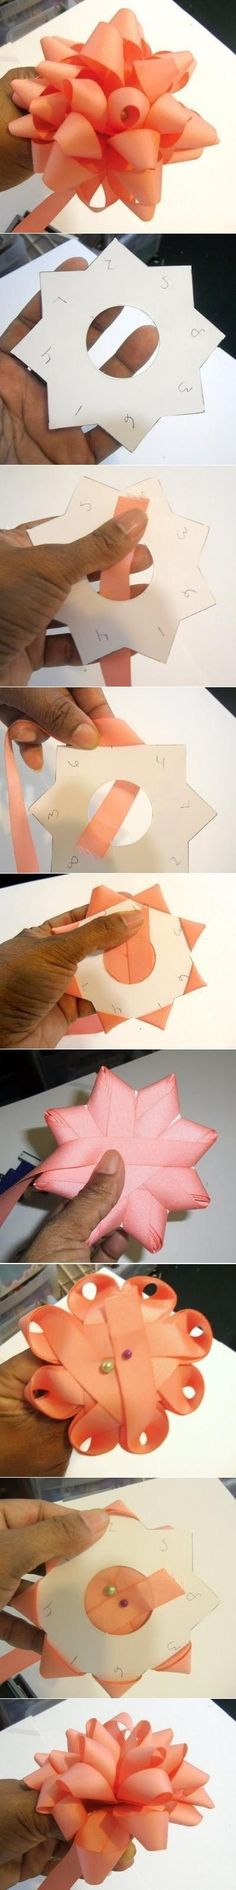 DIY Ribbon Bow using reusable cardboard template.